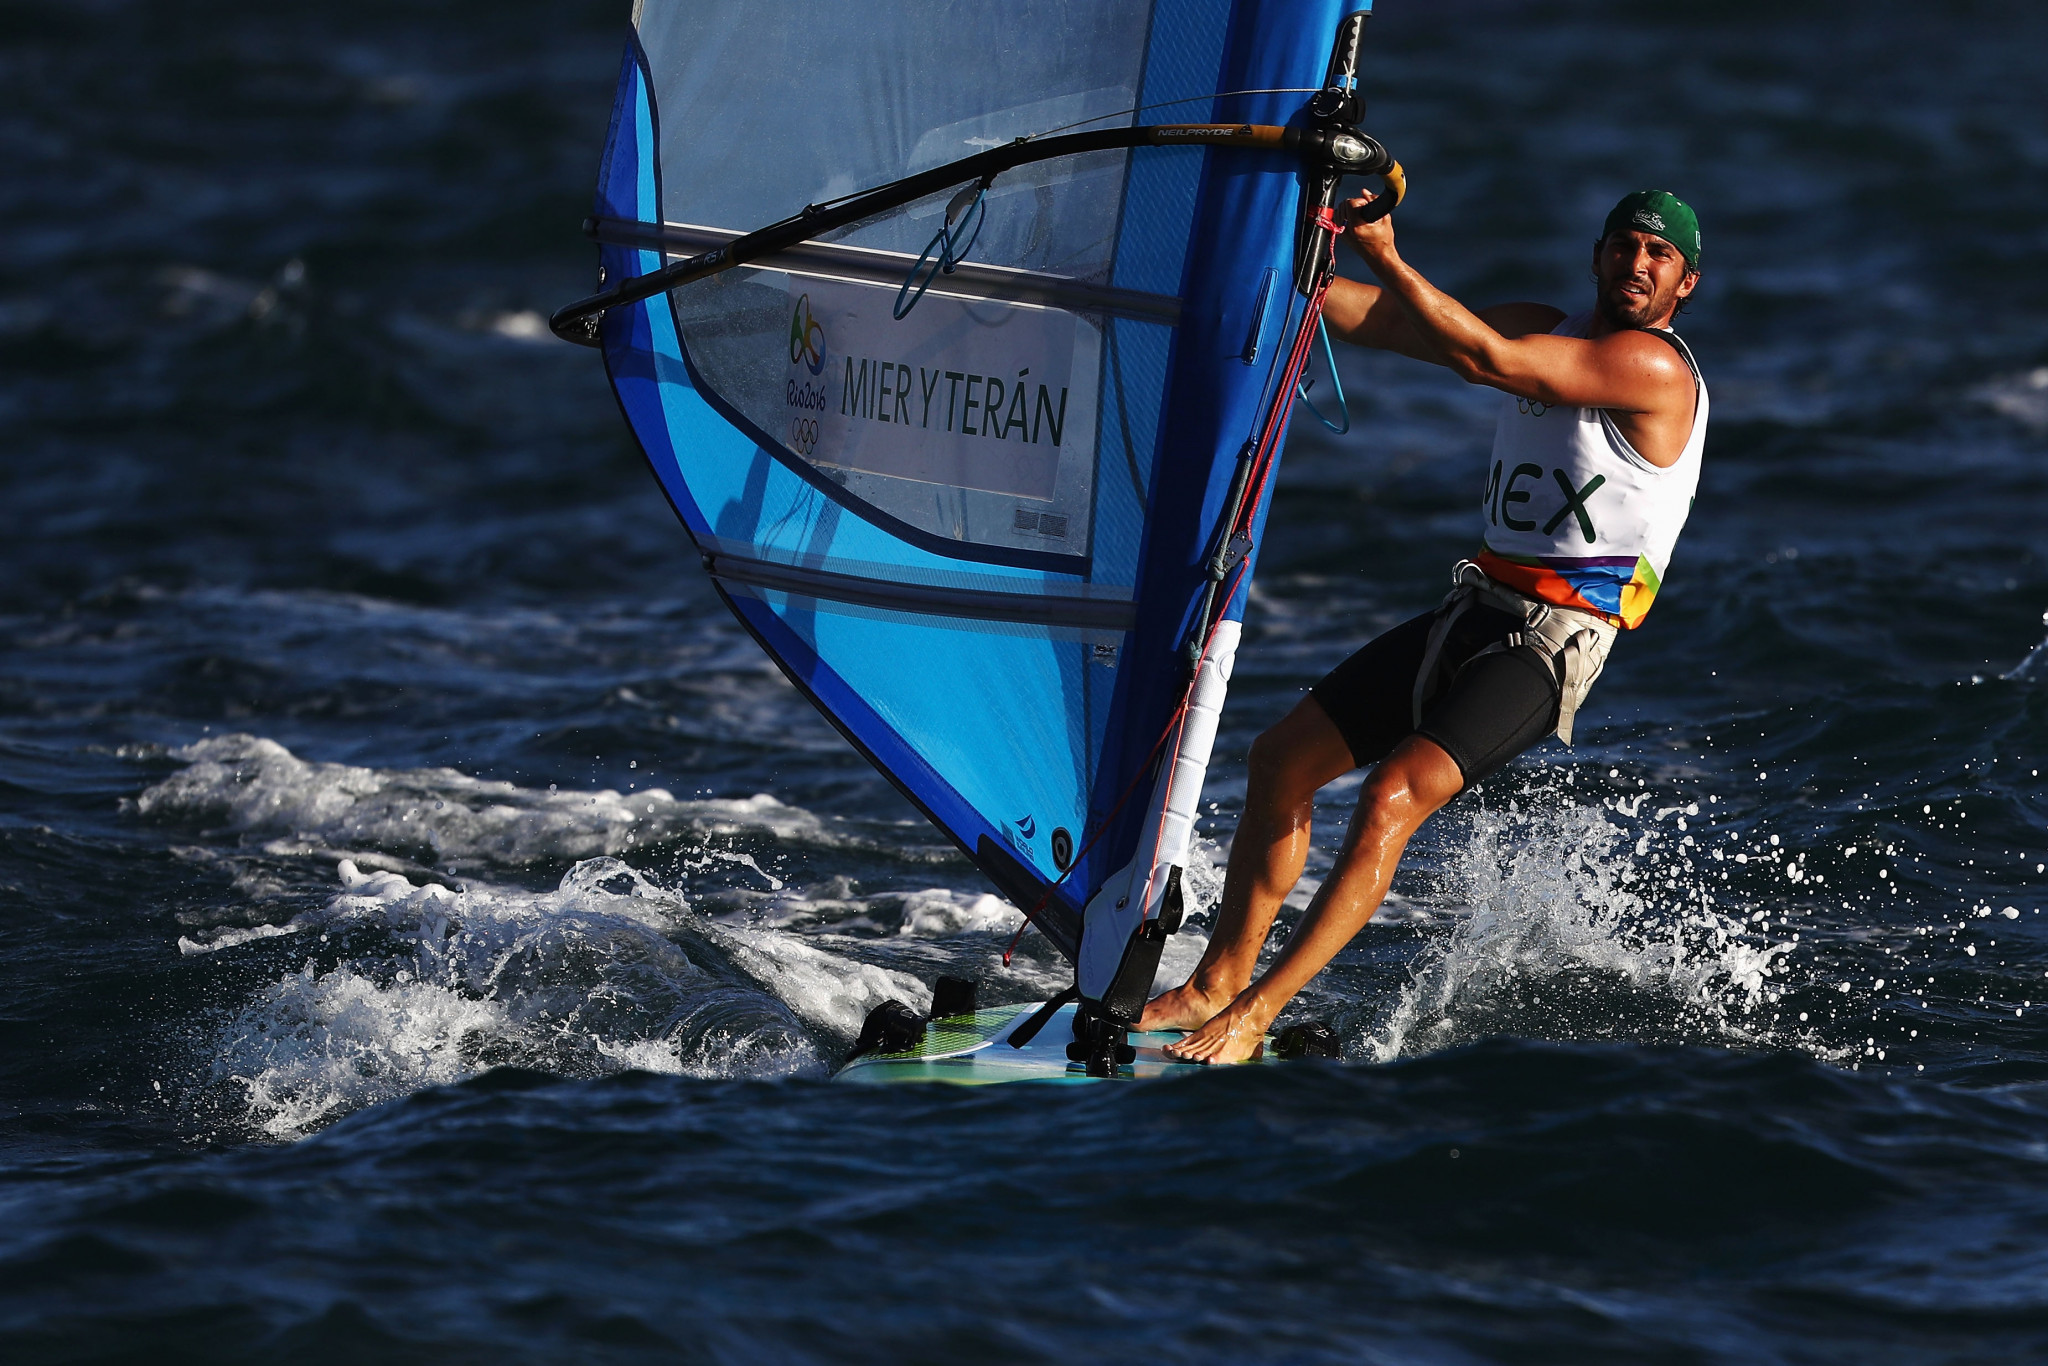 The event is particularly crucial for North Americans such as Mexico's RS:X windsurfer David Mier Y Teran ©Getty Images